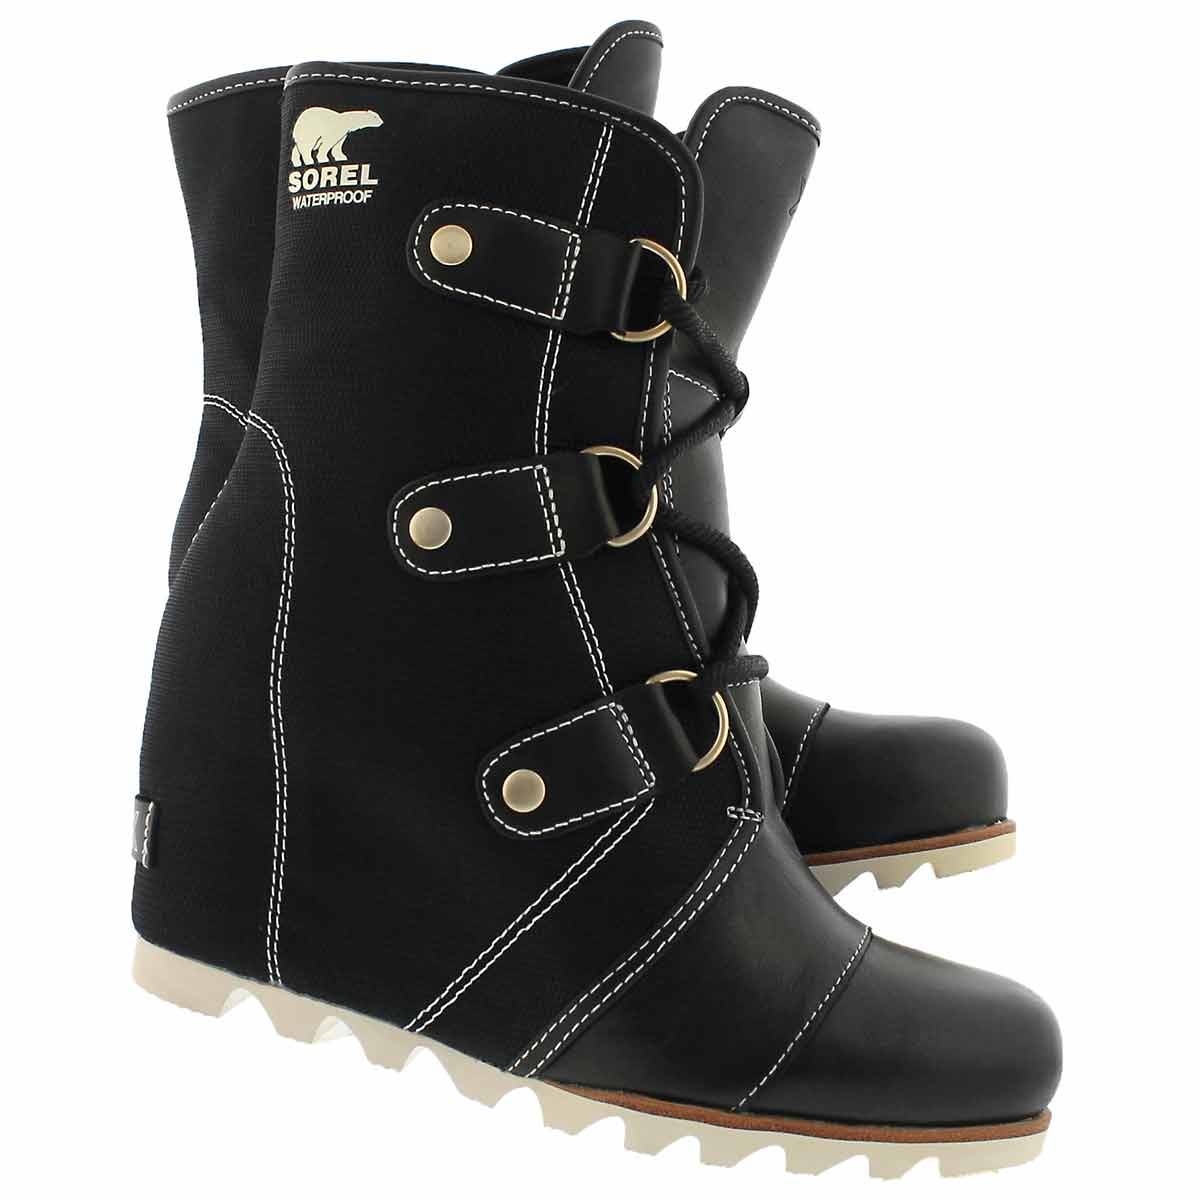 Lds Joan of Arctic X blk wtpf wedge boot